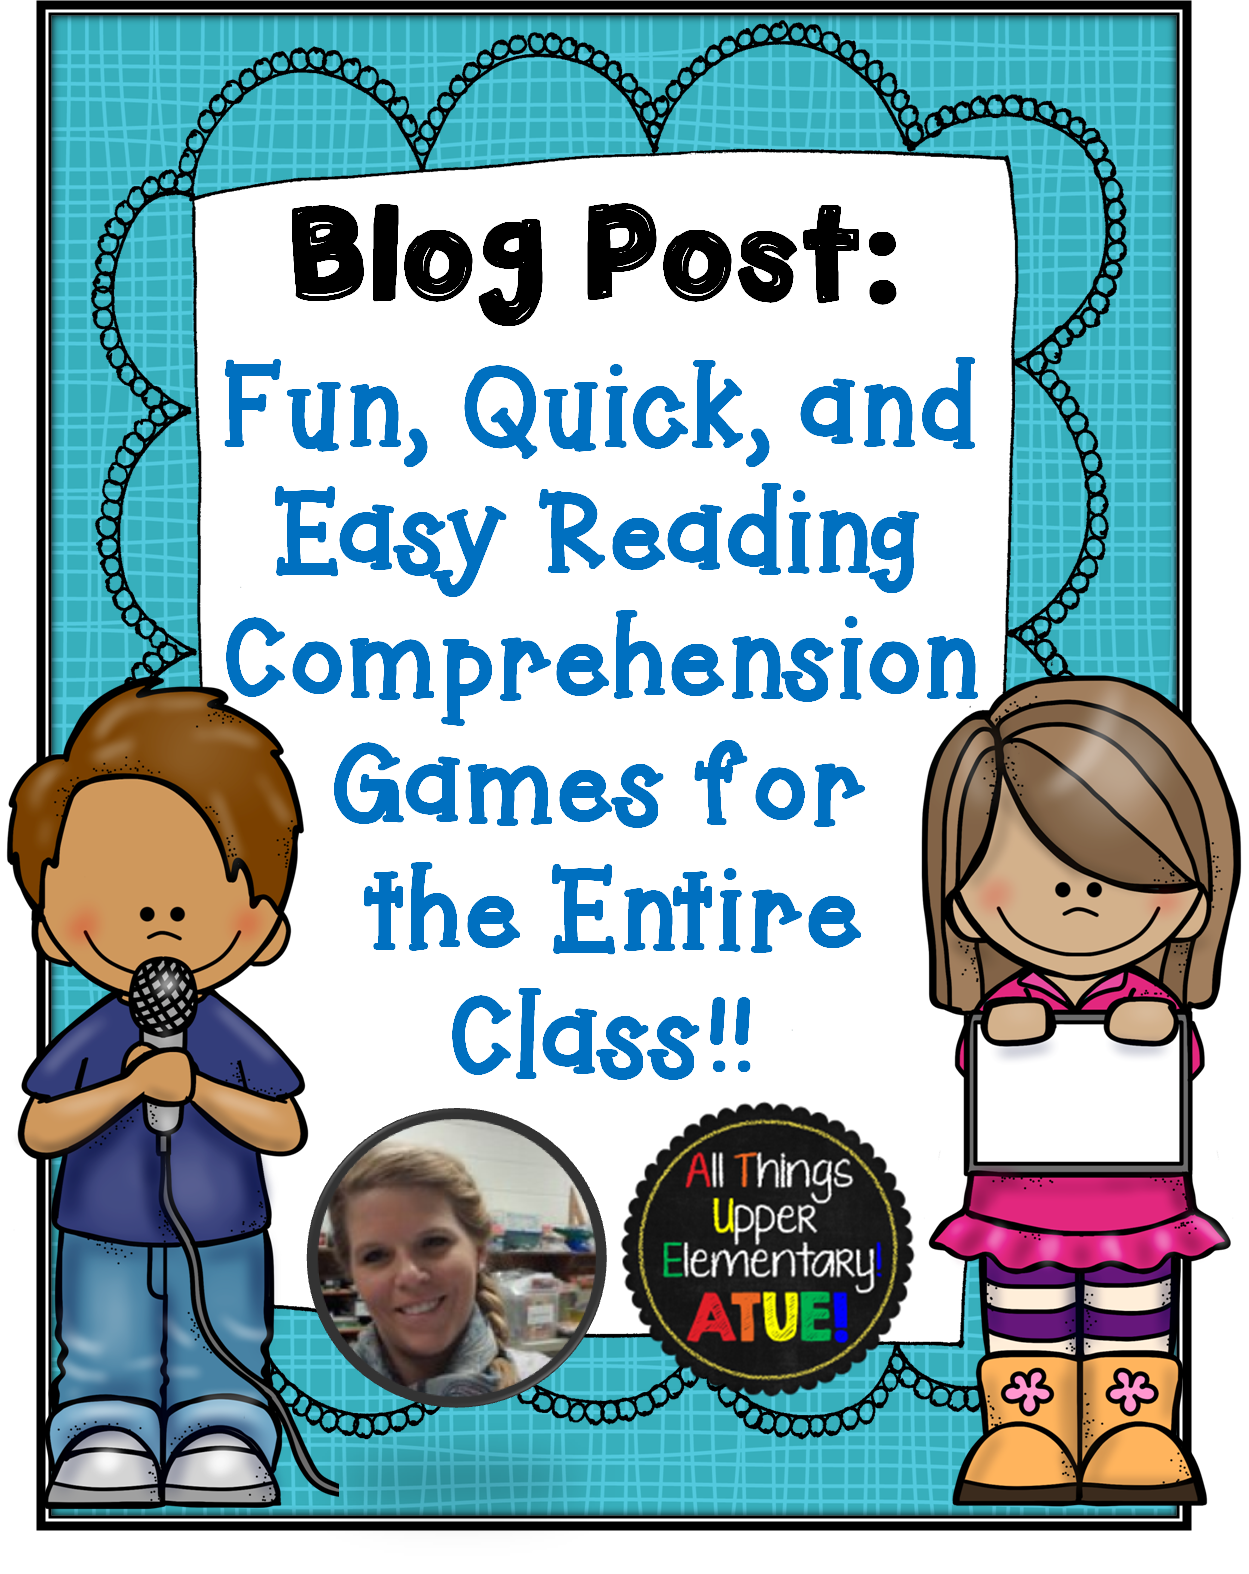 - Fun, Quick, And Easy Reading Comprehension Games For The Entire